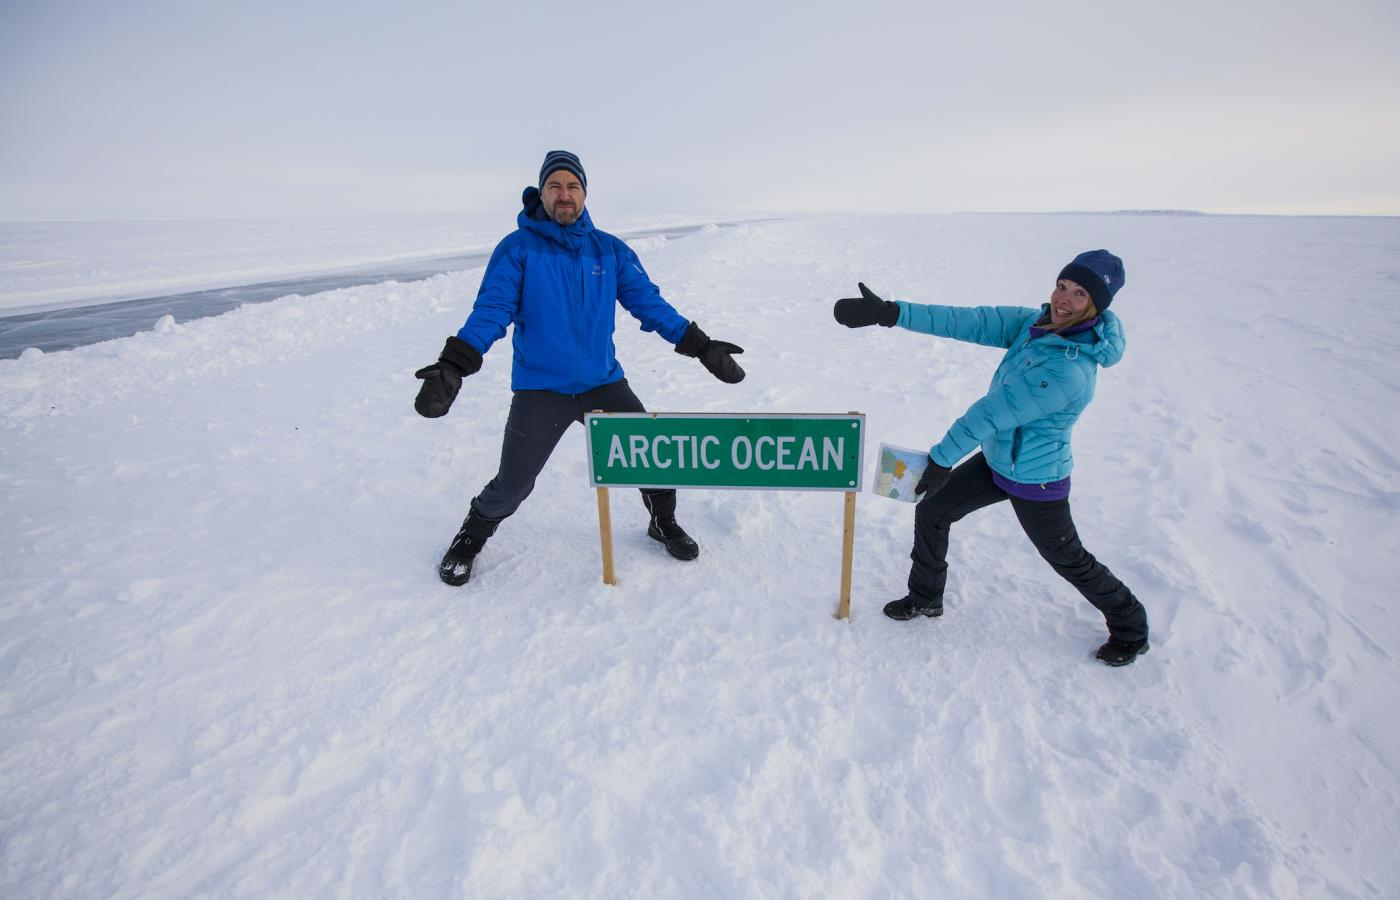 Two people standing at the frozen Arctic Ocean sign